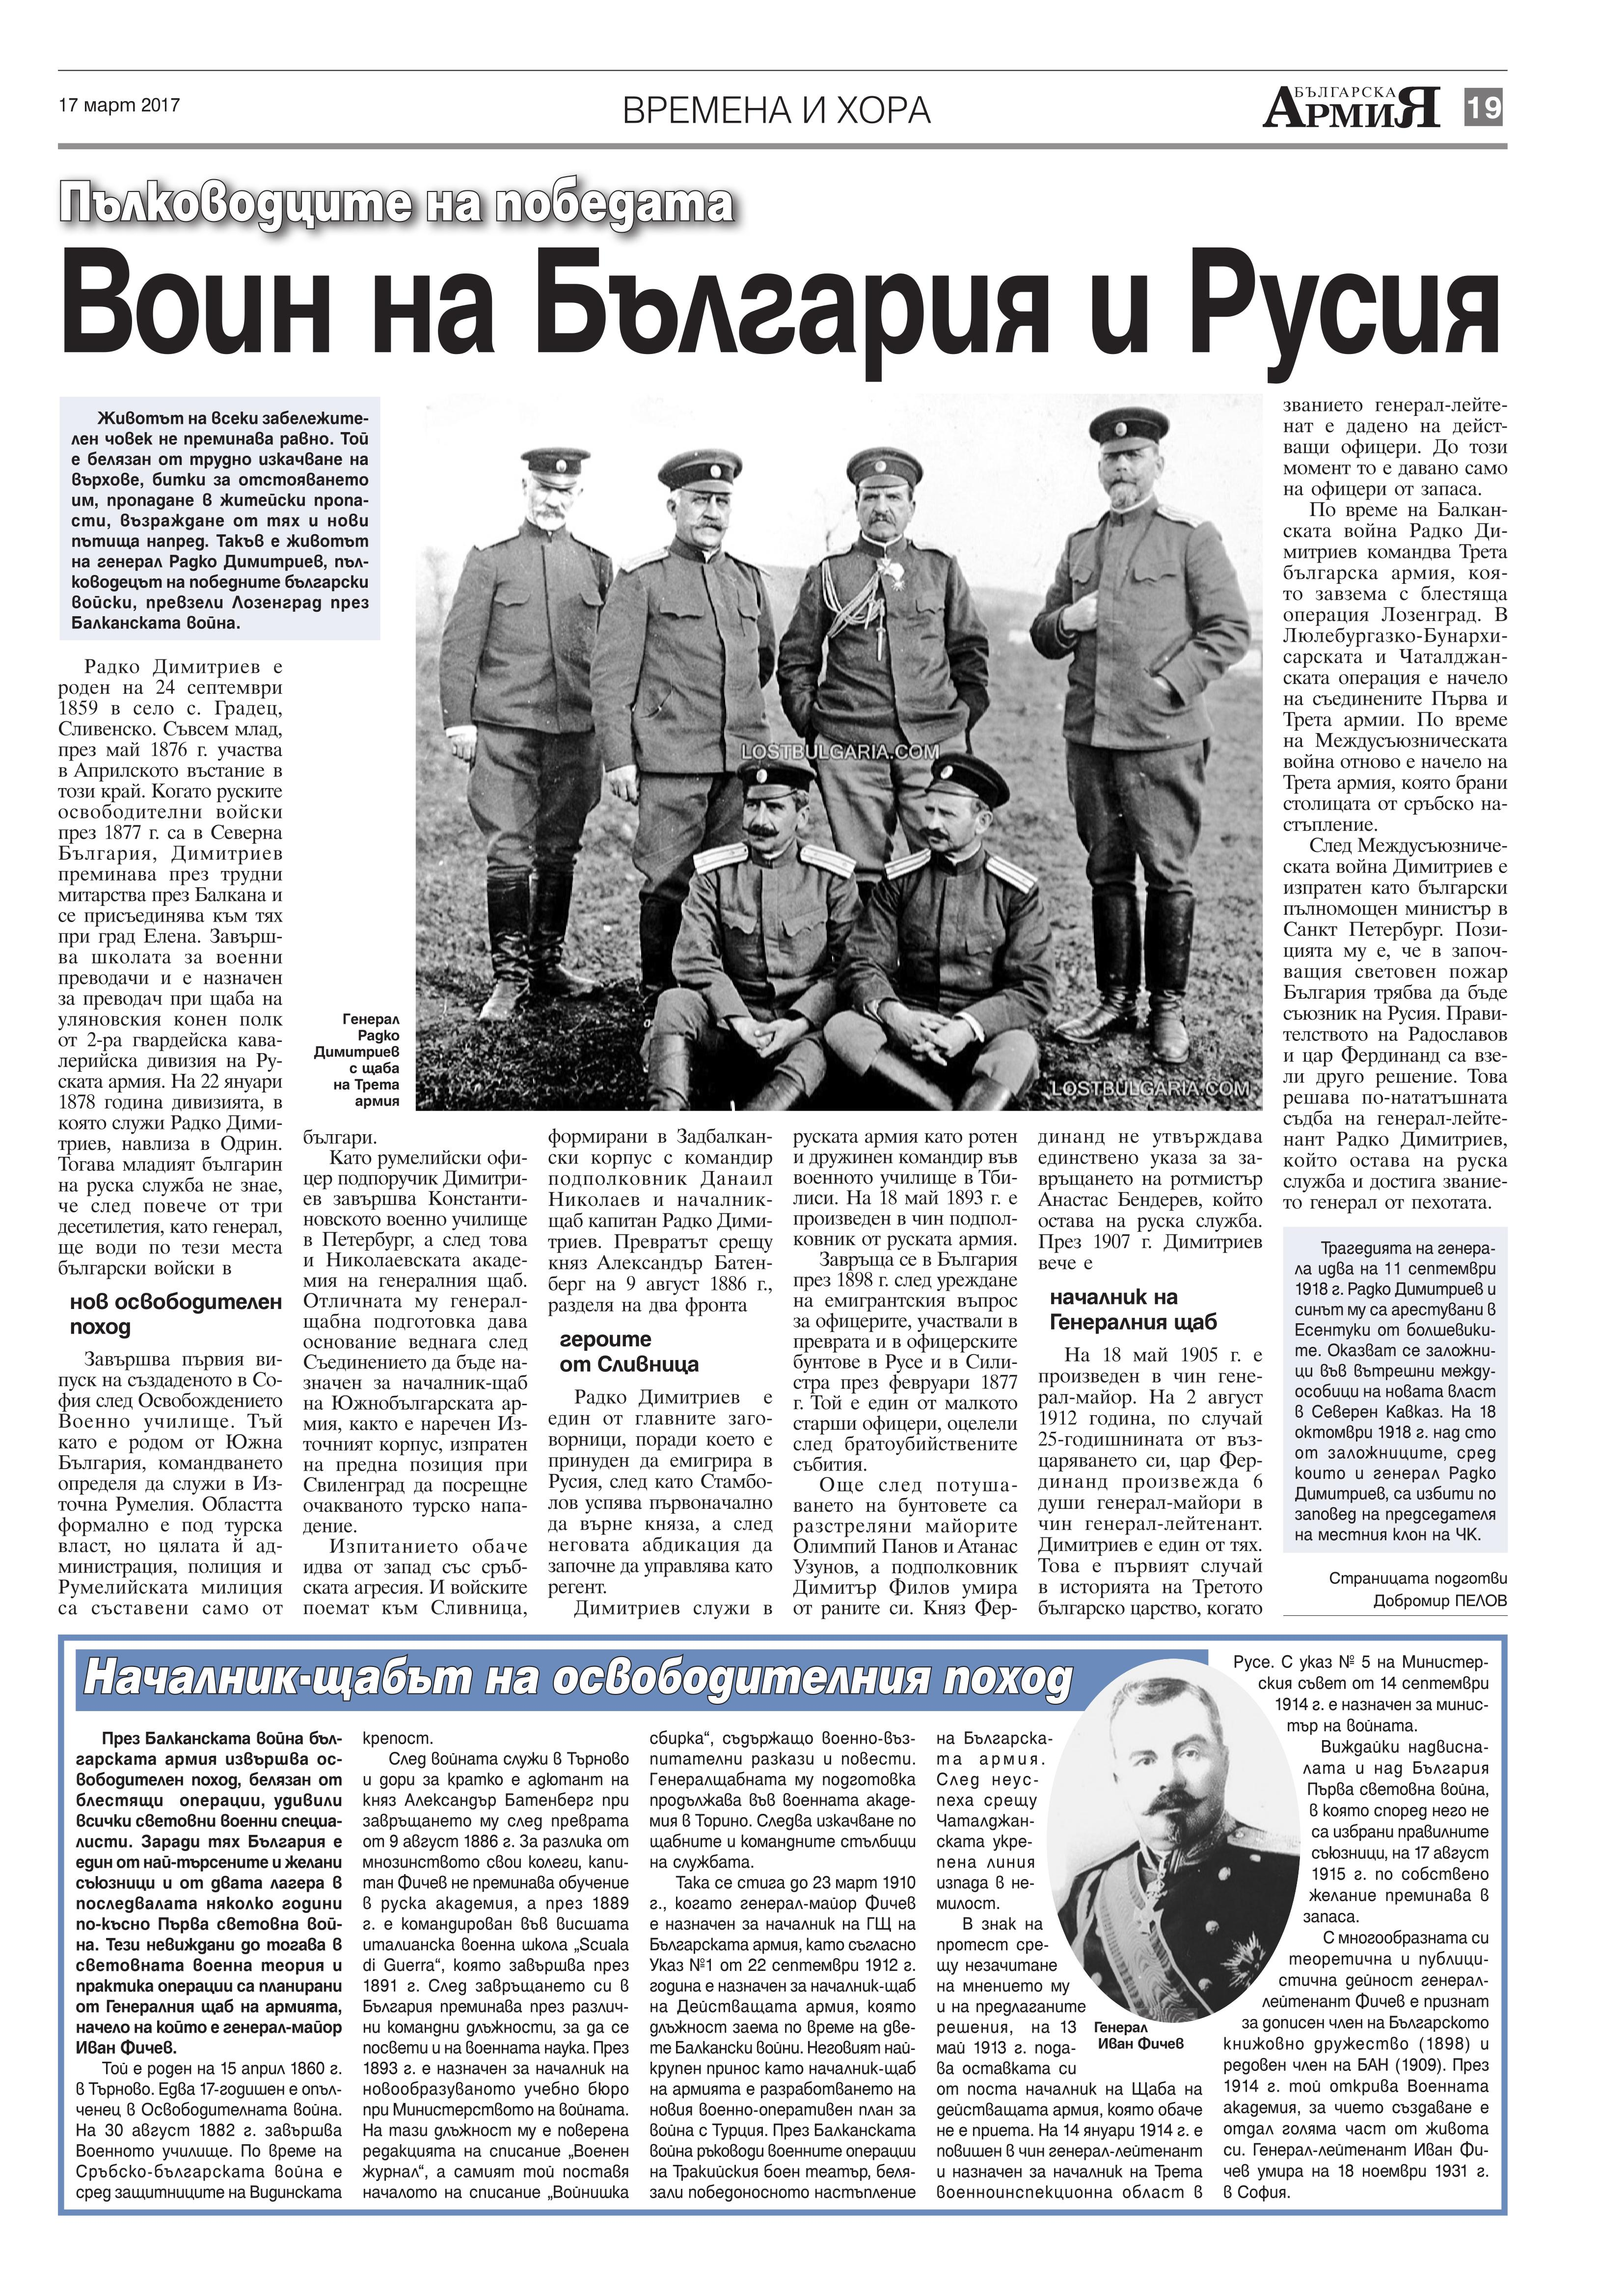 https://www.armymedia.bg/wp-content/uploads/2015/06/19.page1_-17.jpg